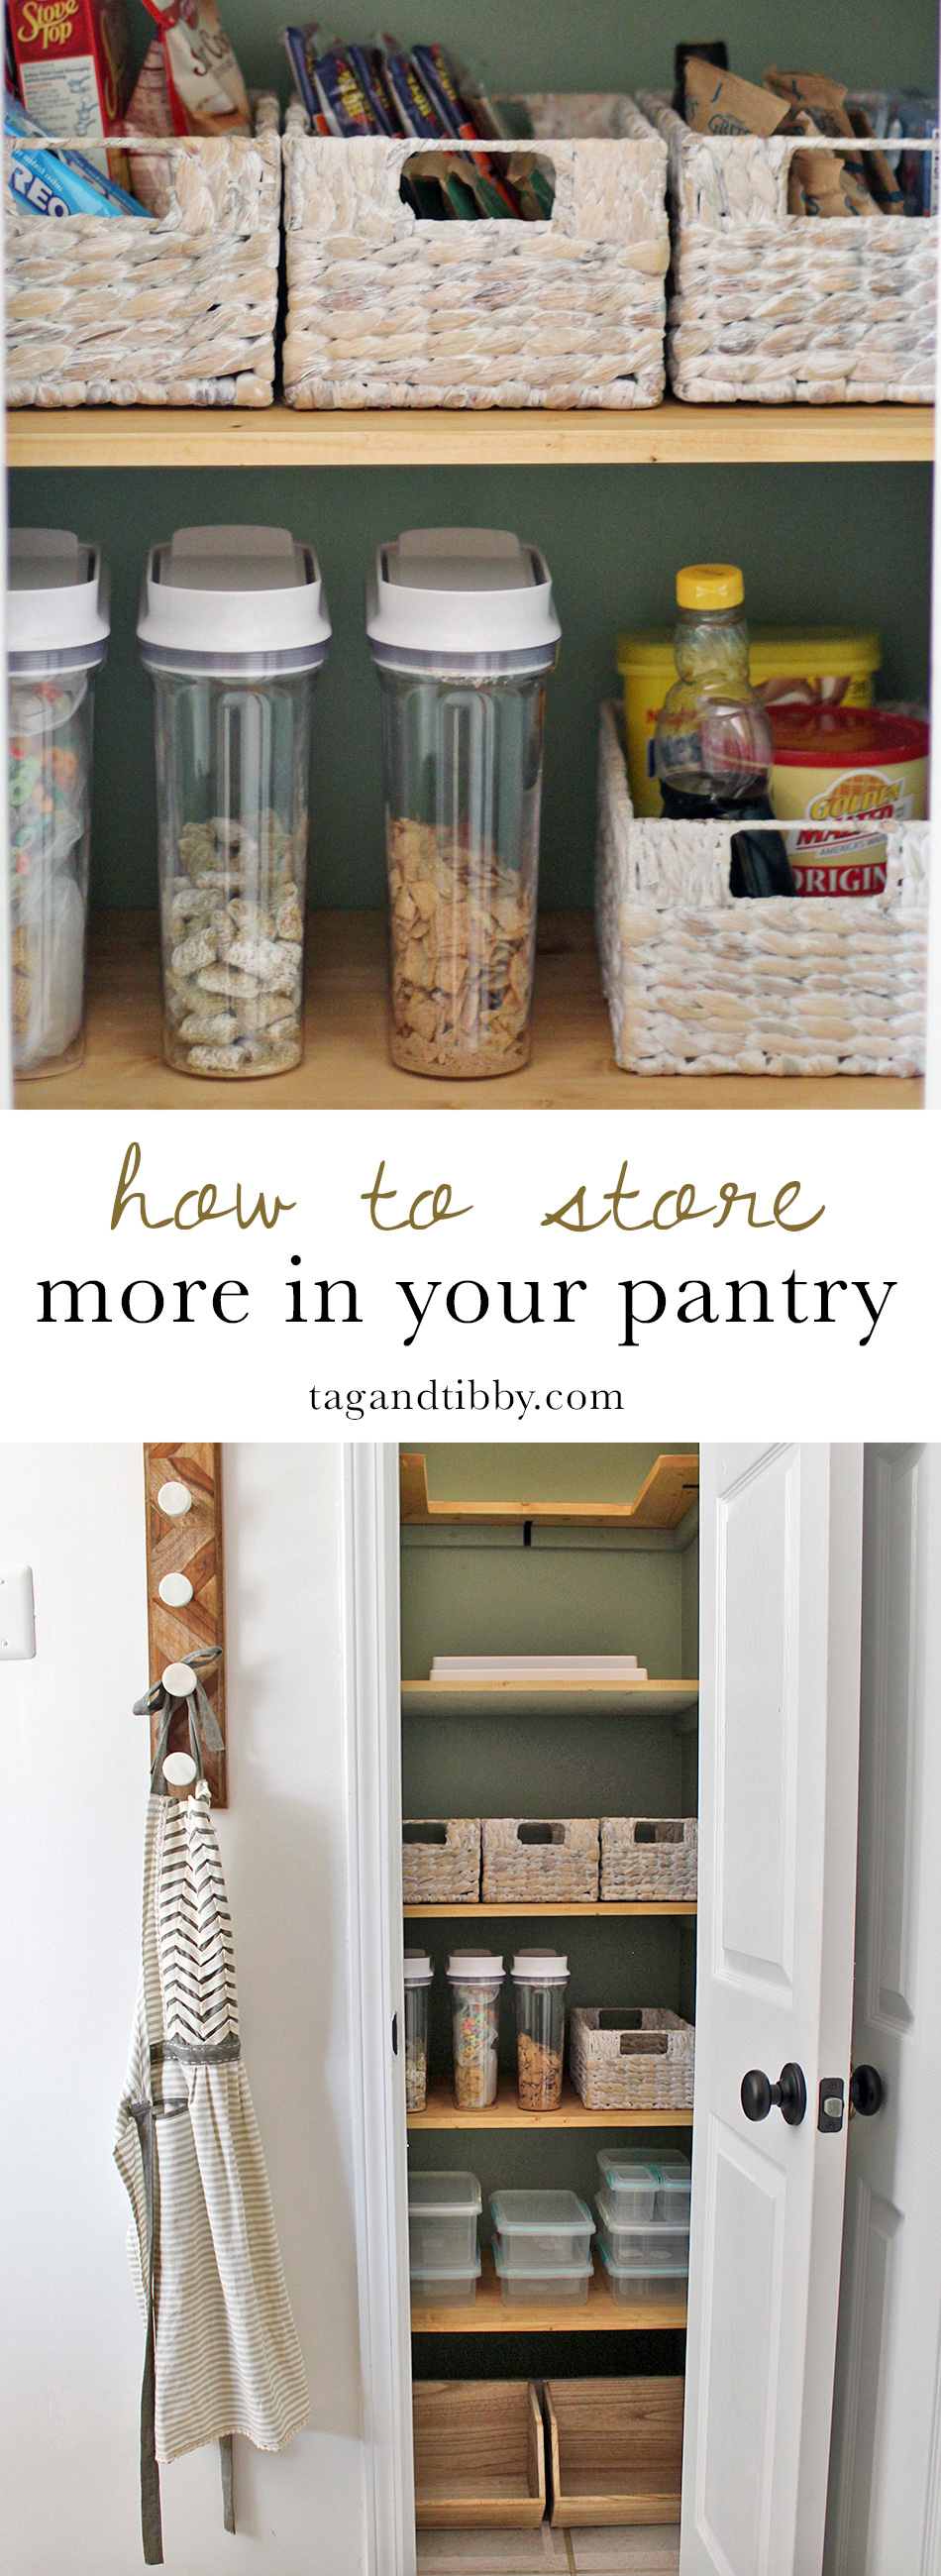 practical tips for storing more in a small kitchen pantry on a budget